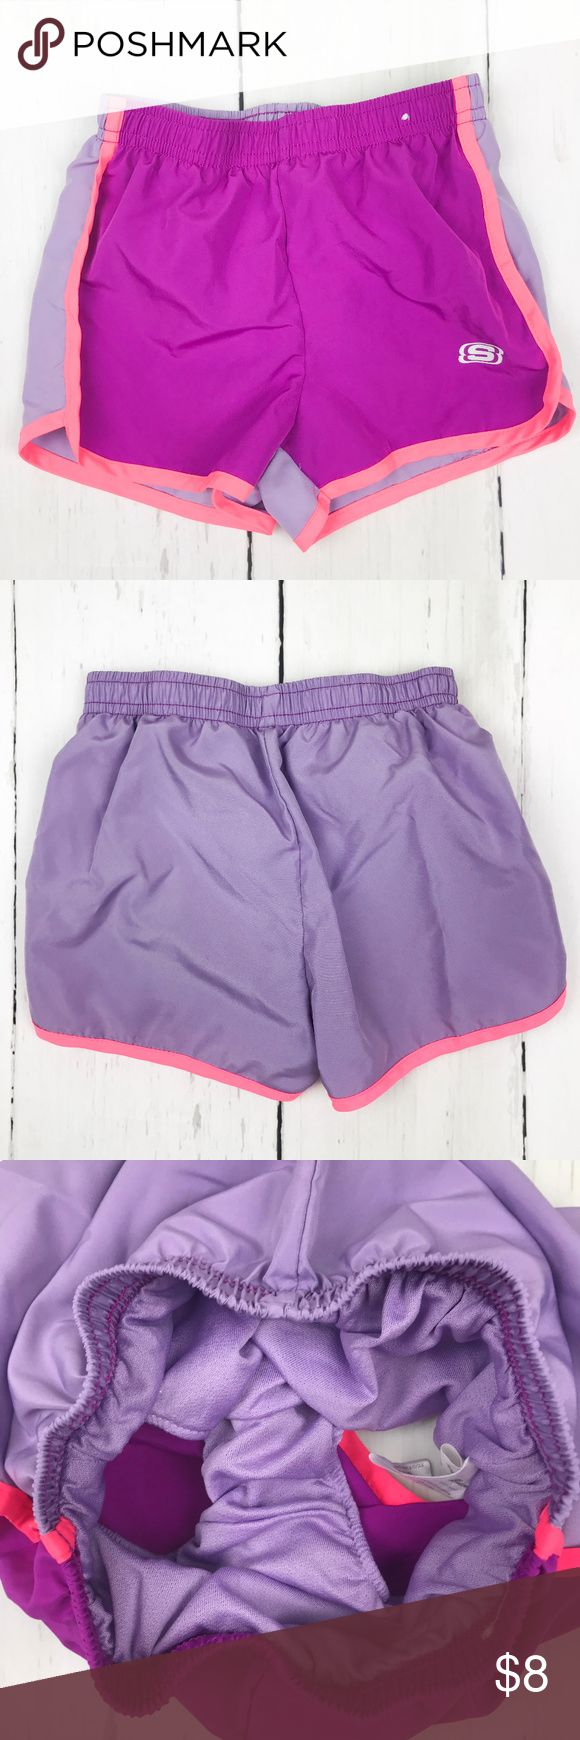 Girls Skechers Purple Lined Active Shorts Size 5/6 These active wear shorts are lined and have an elastic waist. Great for casual wear, bathing suit cover ups, and sports such as soccer, they are lightweight and easy to wear!   From Skechers. Size 5/6. 100% polyester Machine wash cold gentle cycle, tumble dry low. Skechers Bottoms Shorts